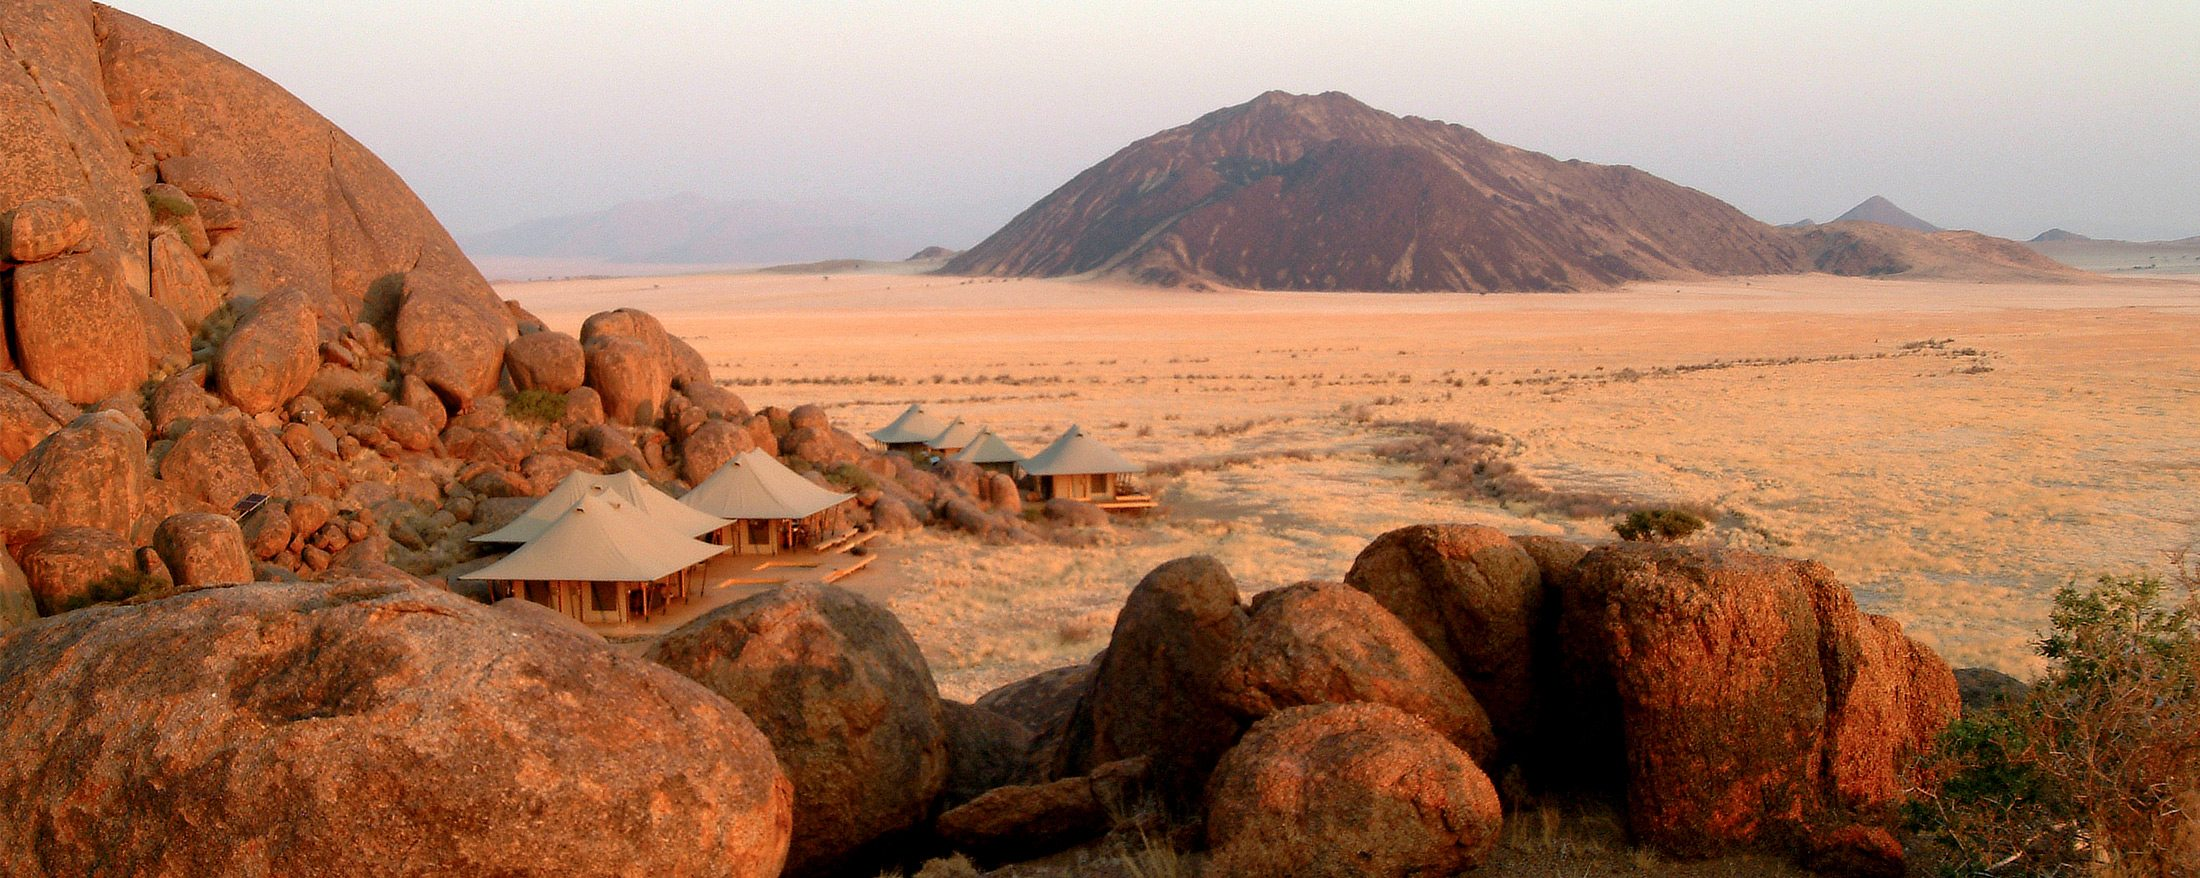 Boulders Safari Camp gets its name from the surrounding boulders.